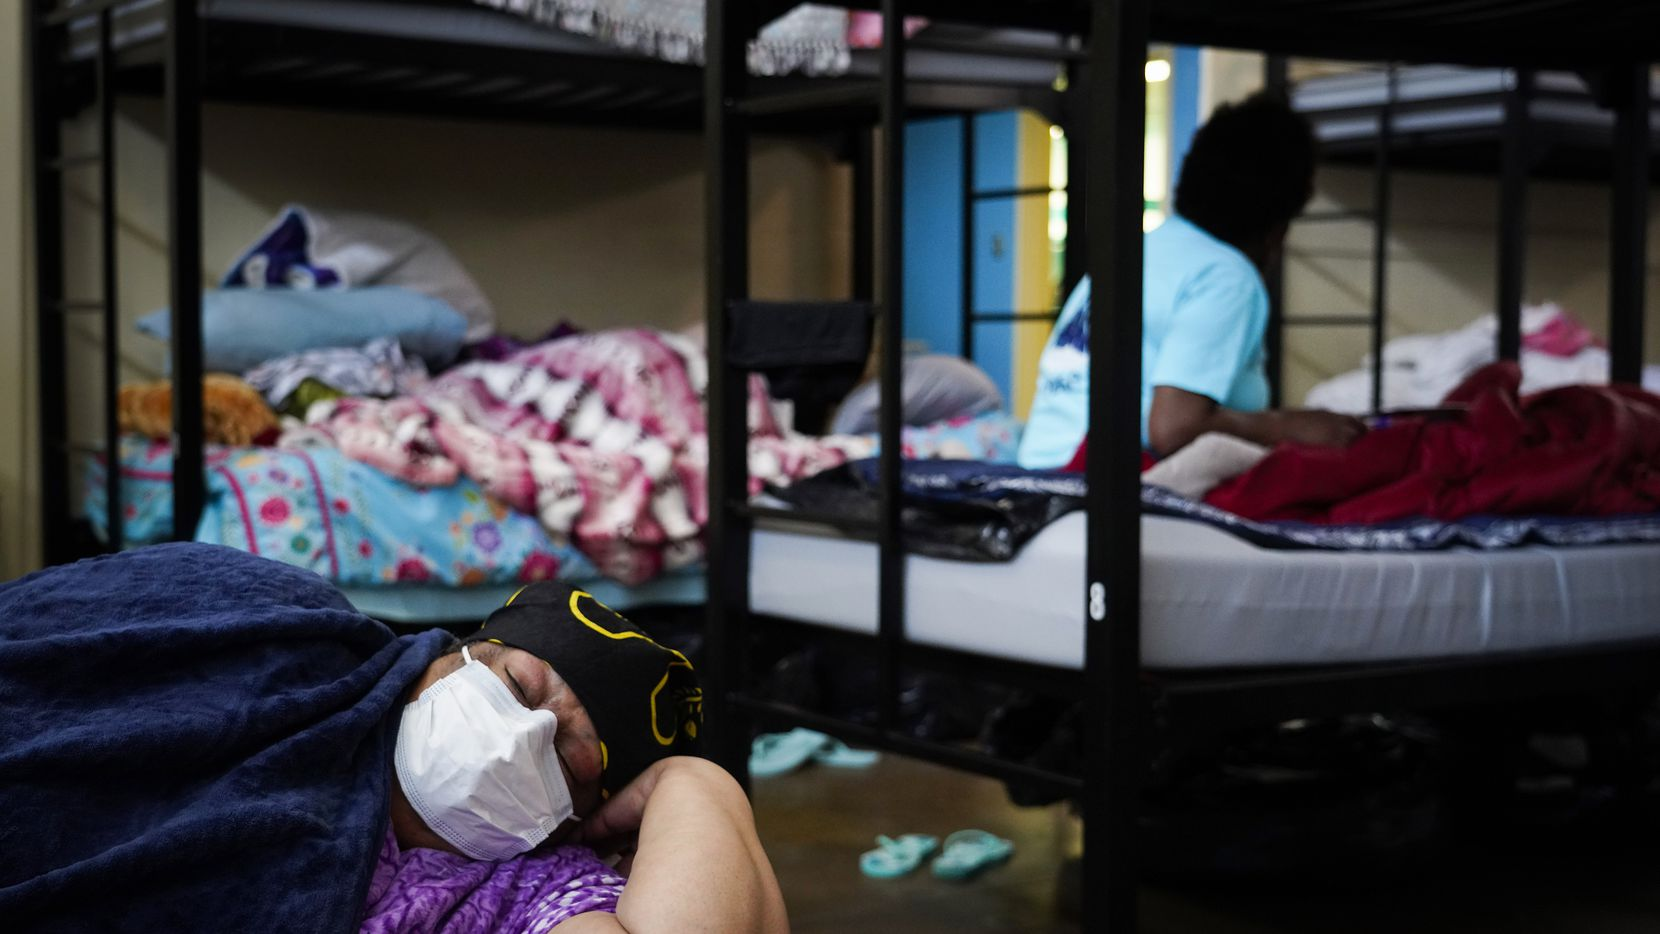 L. A. White wears a face mask as she rests in a bunk at Austin Street Center on Wednesday, March 11, 2020, in Dallas. White said she suffers from COPD (chronic obstructive pulmonary disease) among other respiratory conditions. The homeless shelter is adjusting to try to prevent the spread of the new coronavirus to one of the most vulnerable populations in the city. Clients at high risk, or sick clients, are also provided with masks. Shelter officials said they are distributing masks sparingly to preserve supply.